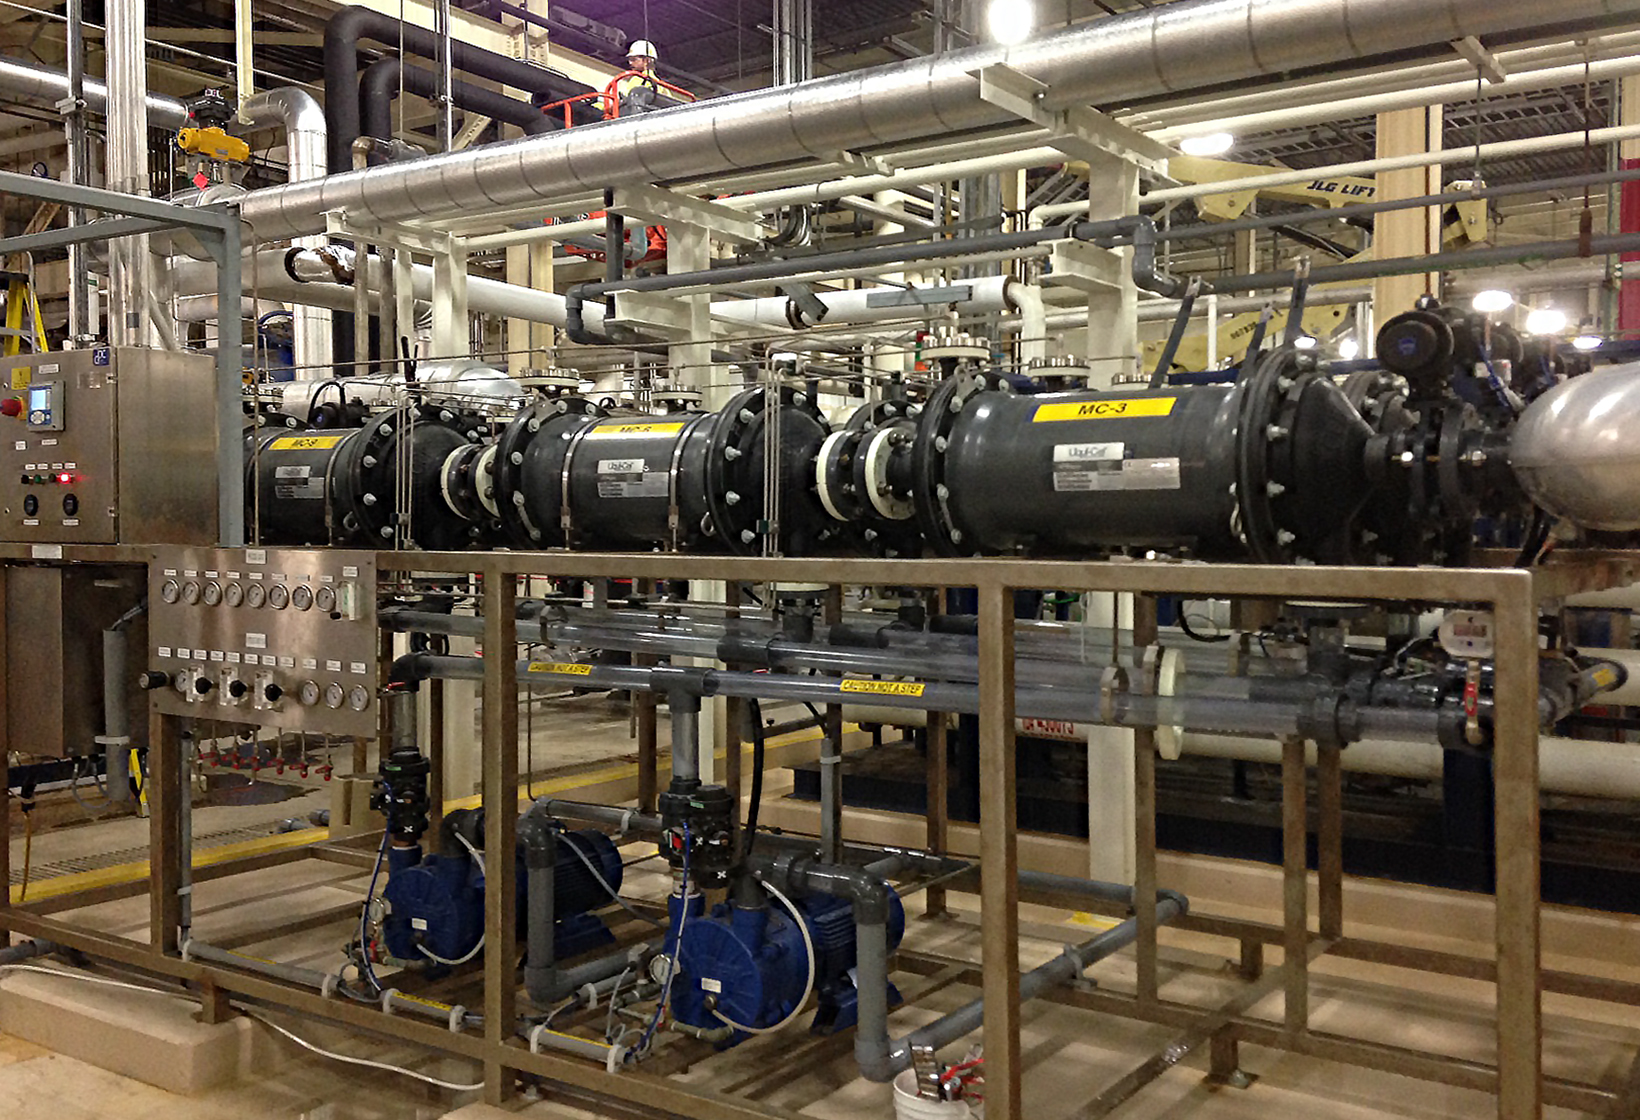 DO Removal for Boiler Feed Water -